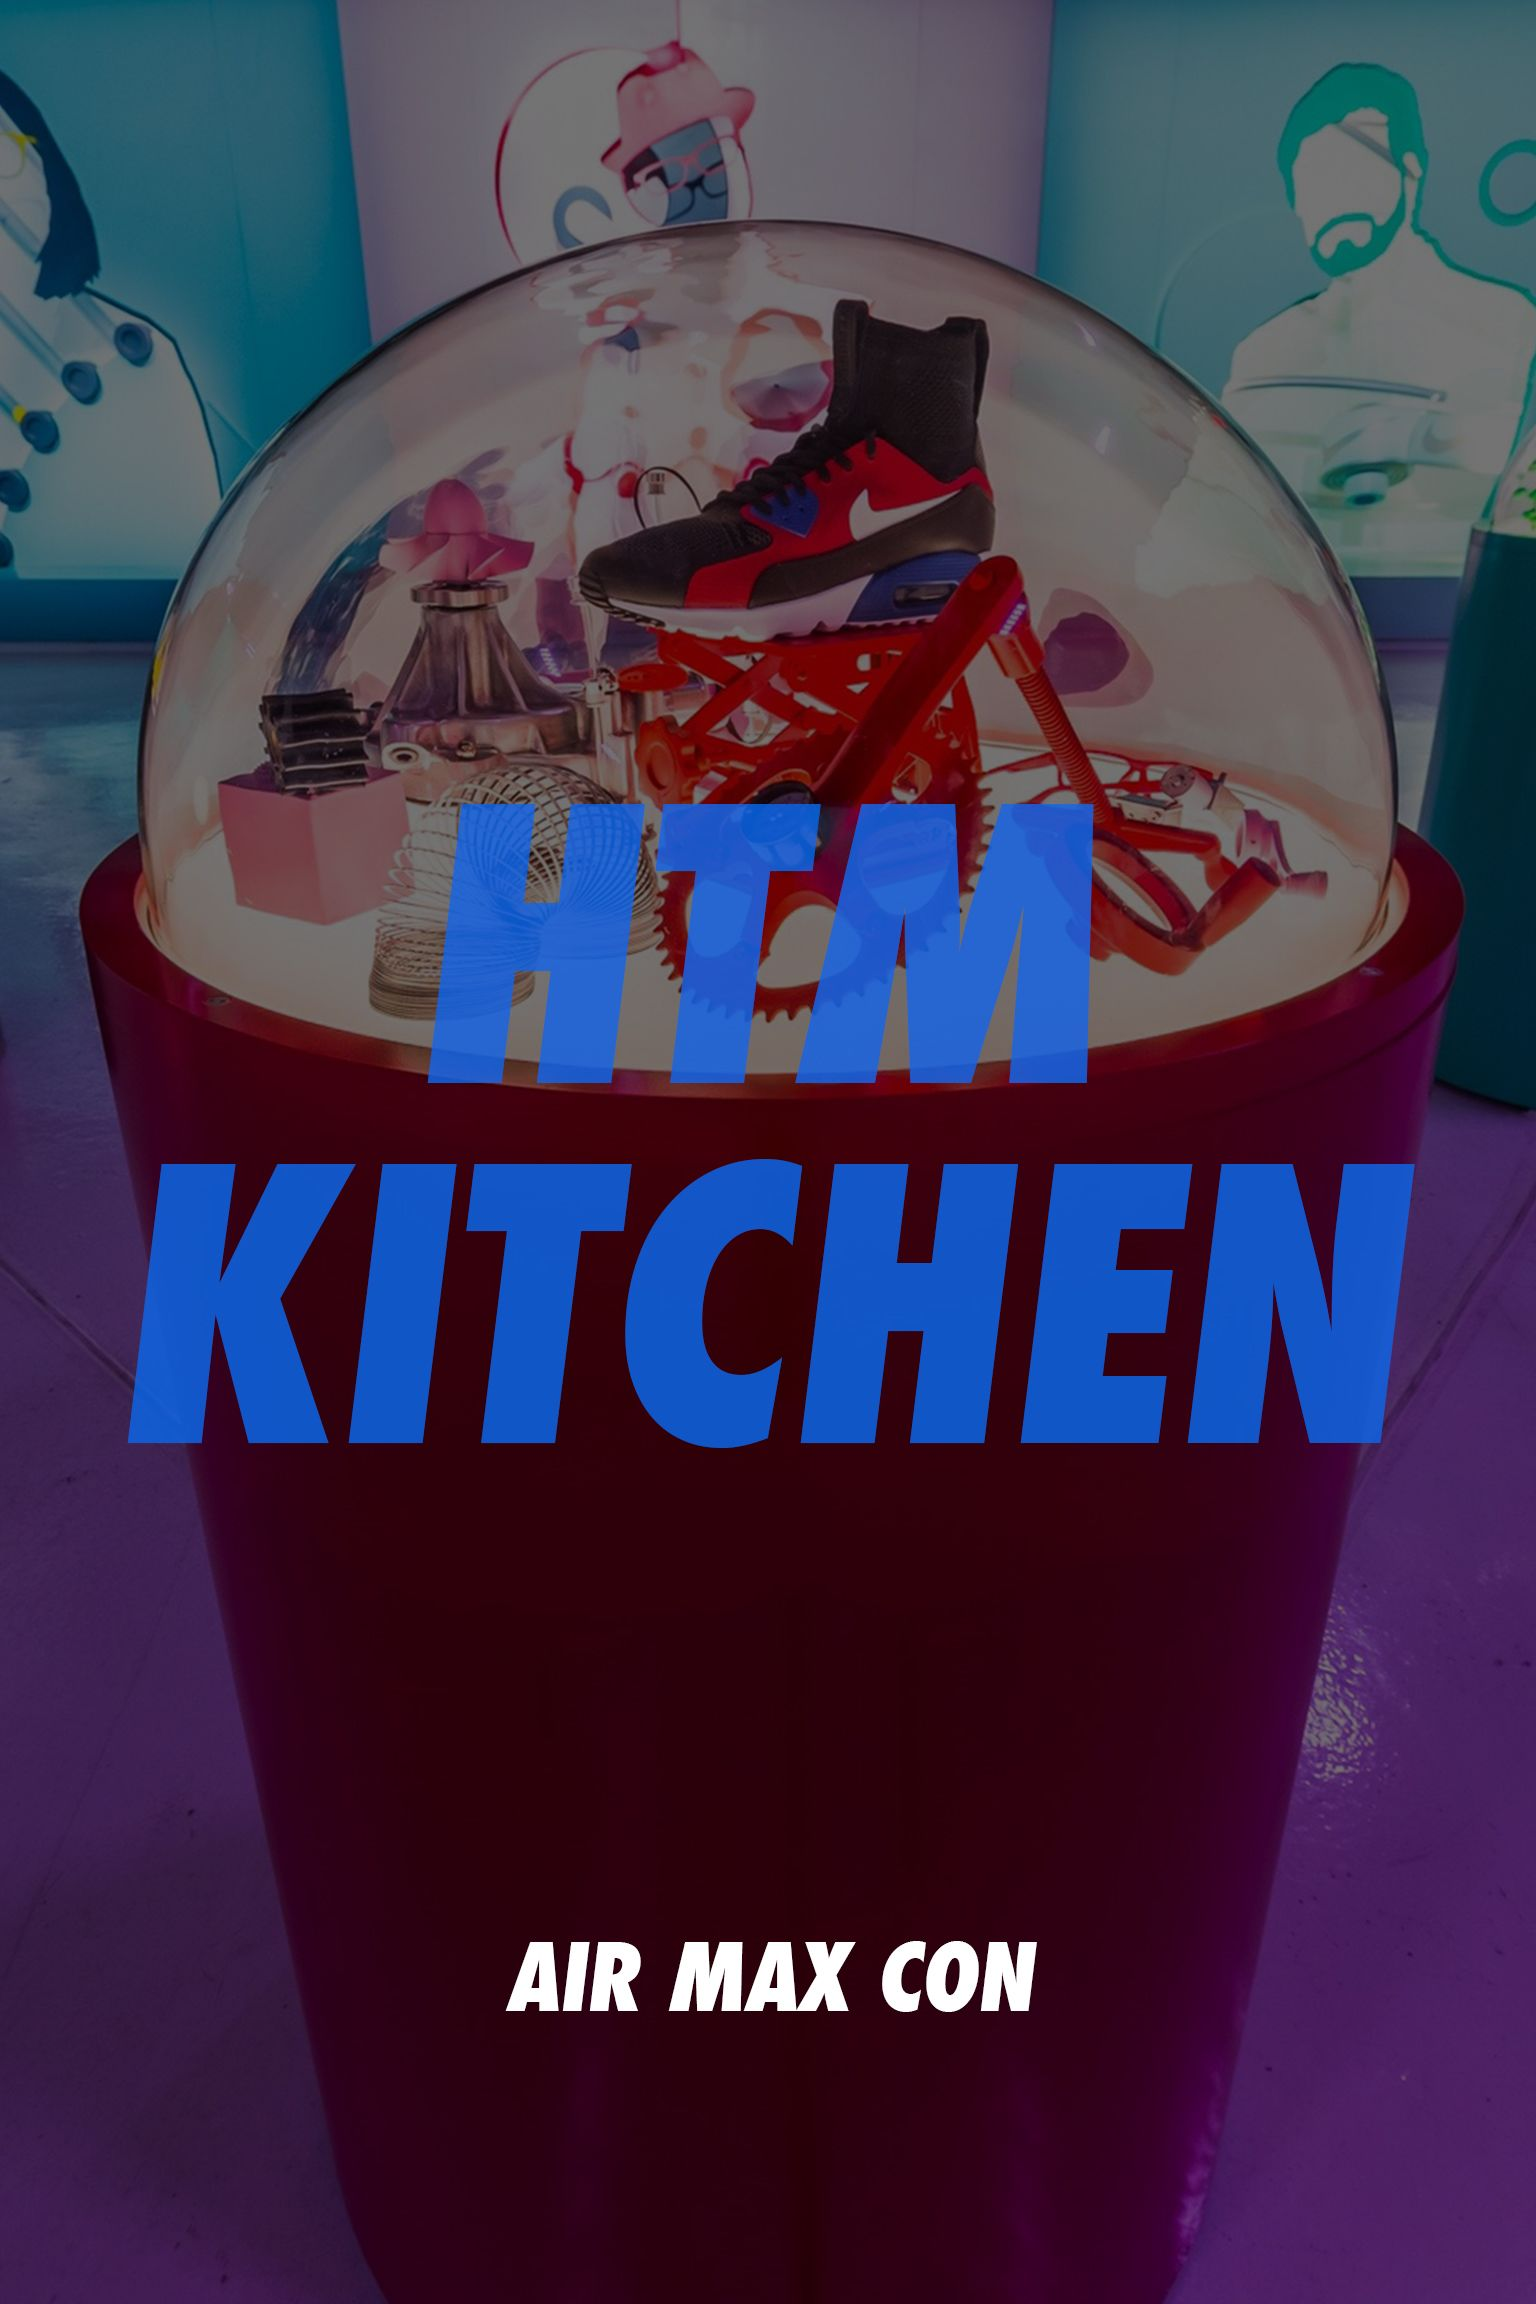 Nike Air Max Con NYC: HTM Kitchen